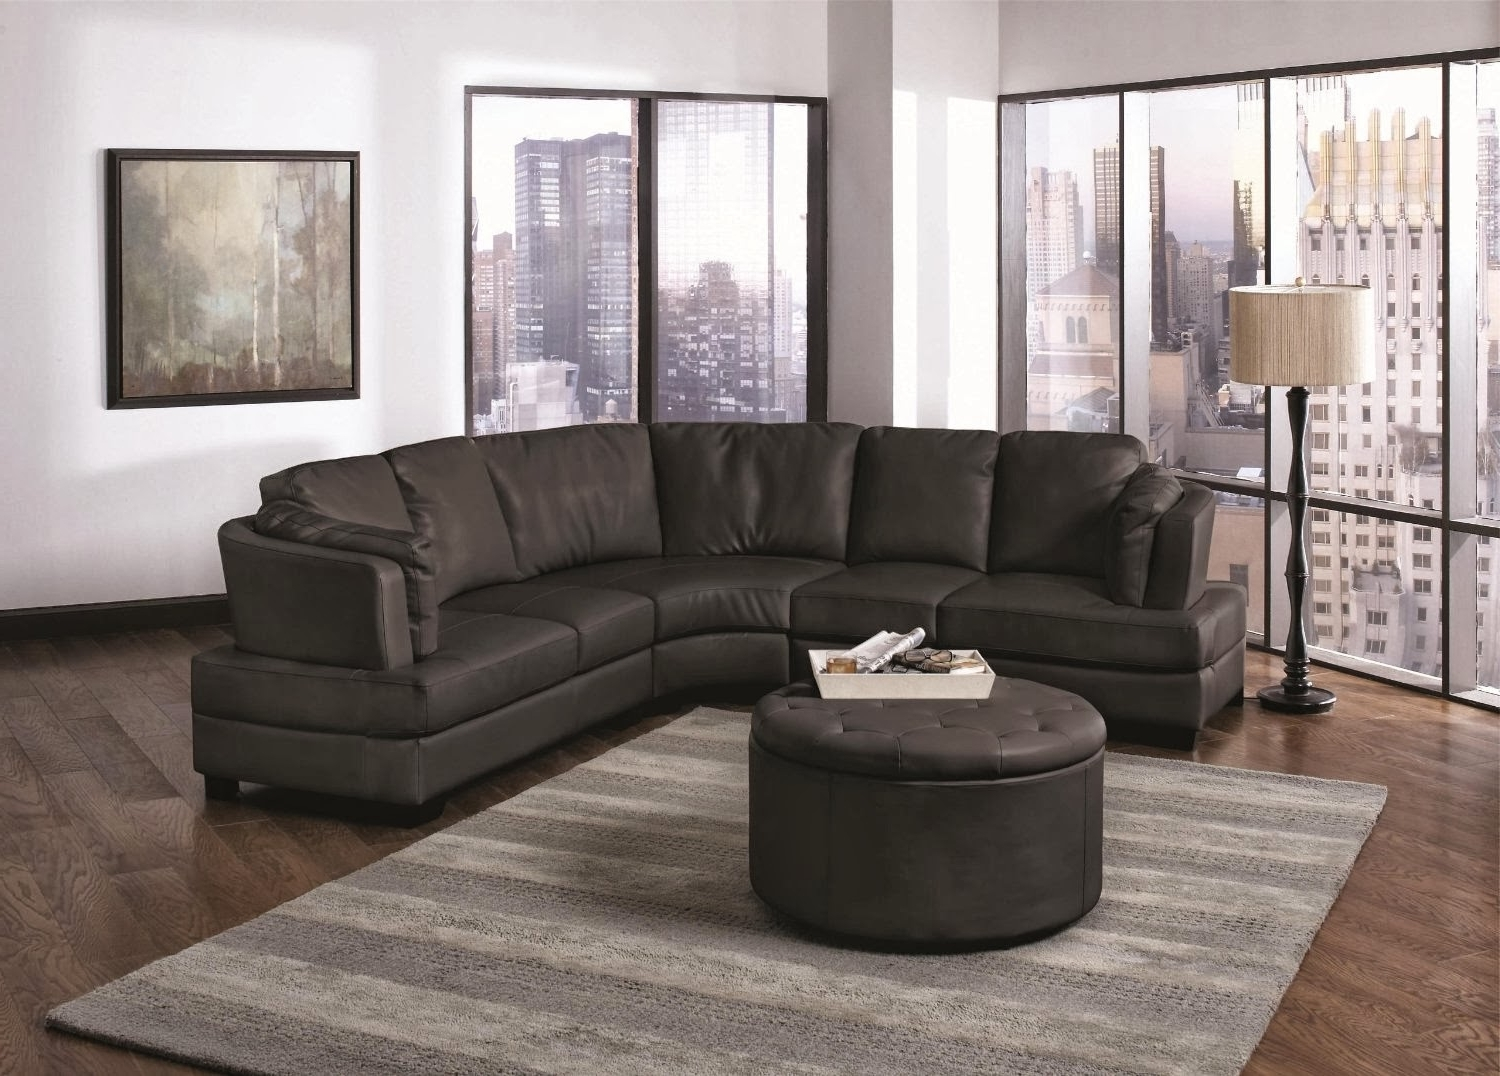 Recent Round Sectional Sofas In Ideas For Decorate With A Curved Sectional Sofa — Cabinets, Beds (View 14 of 20)